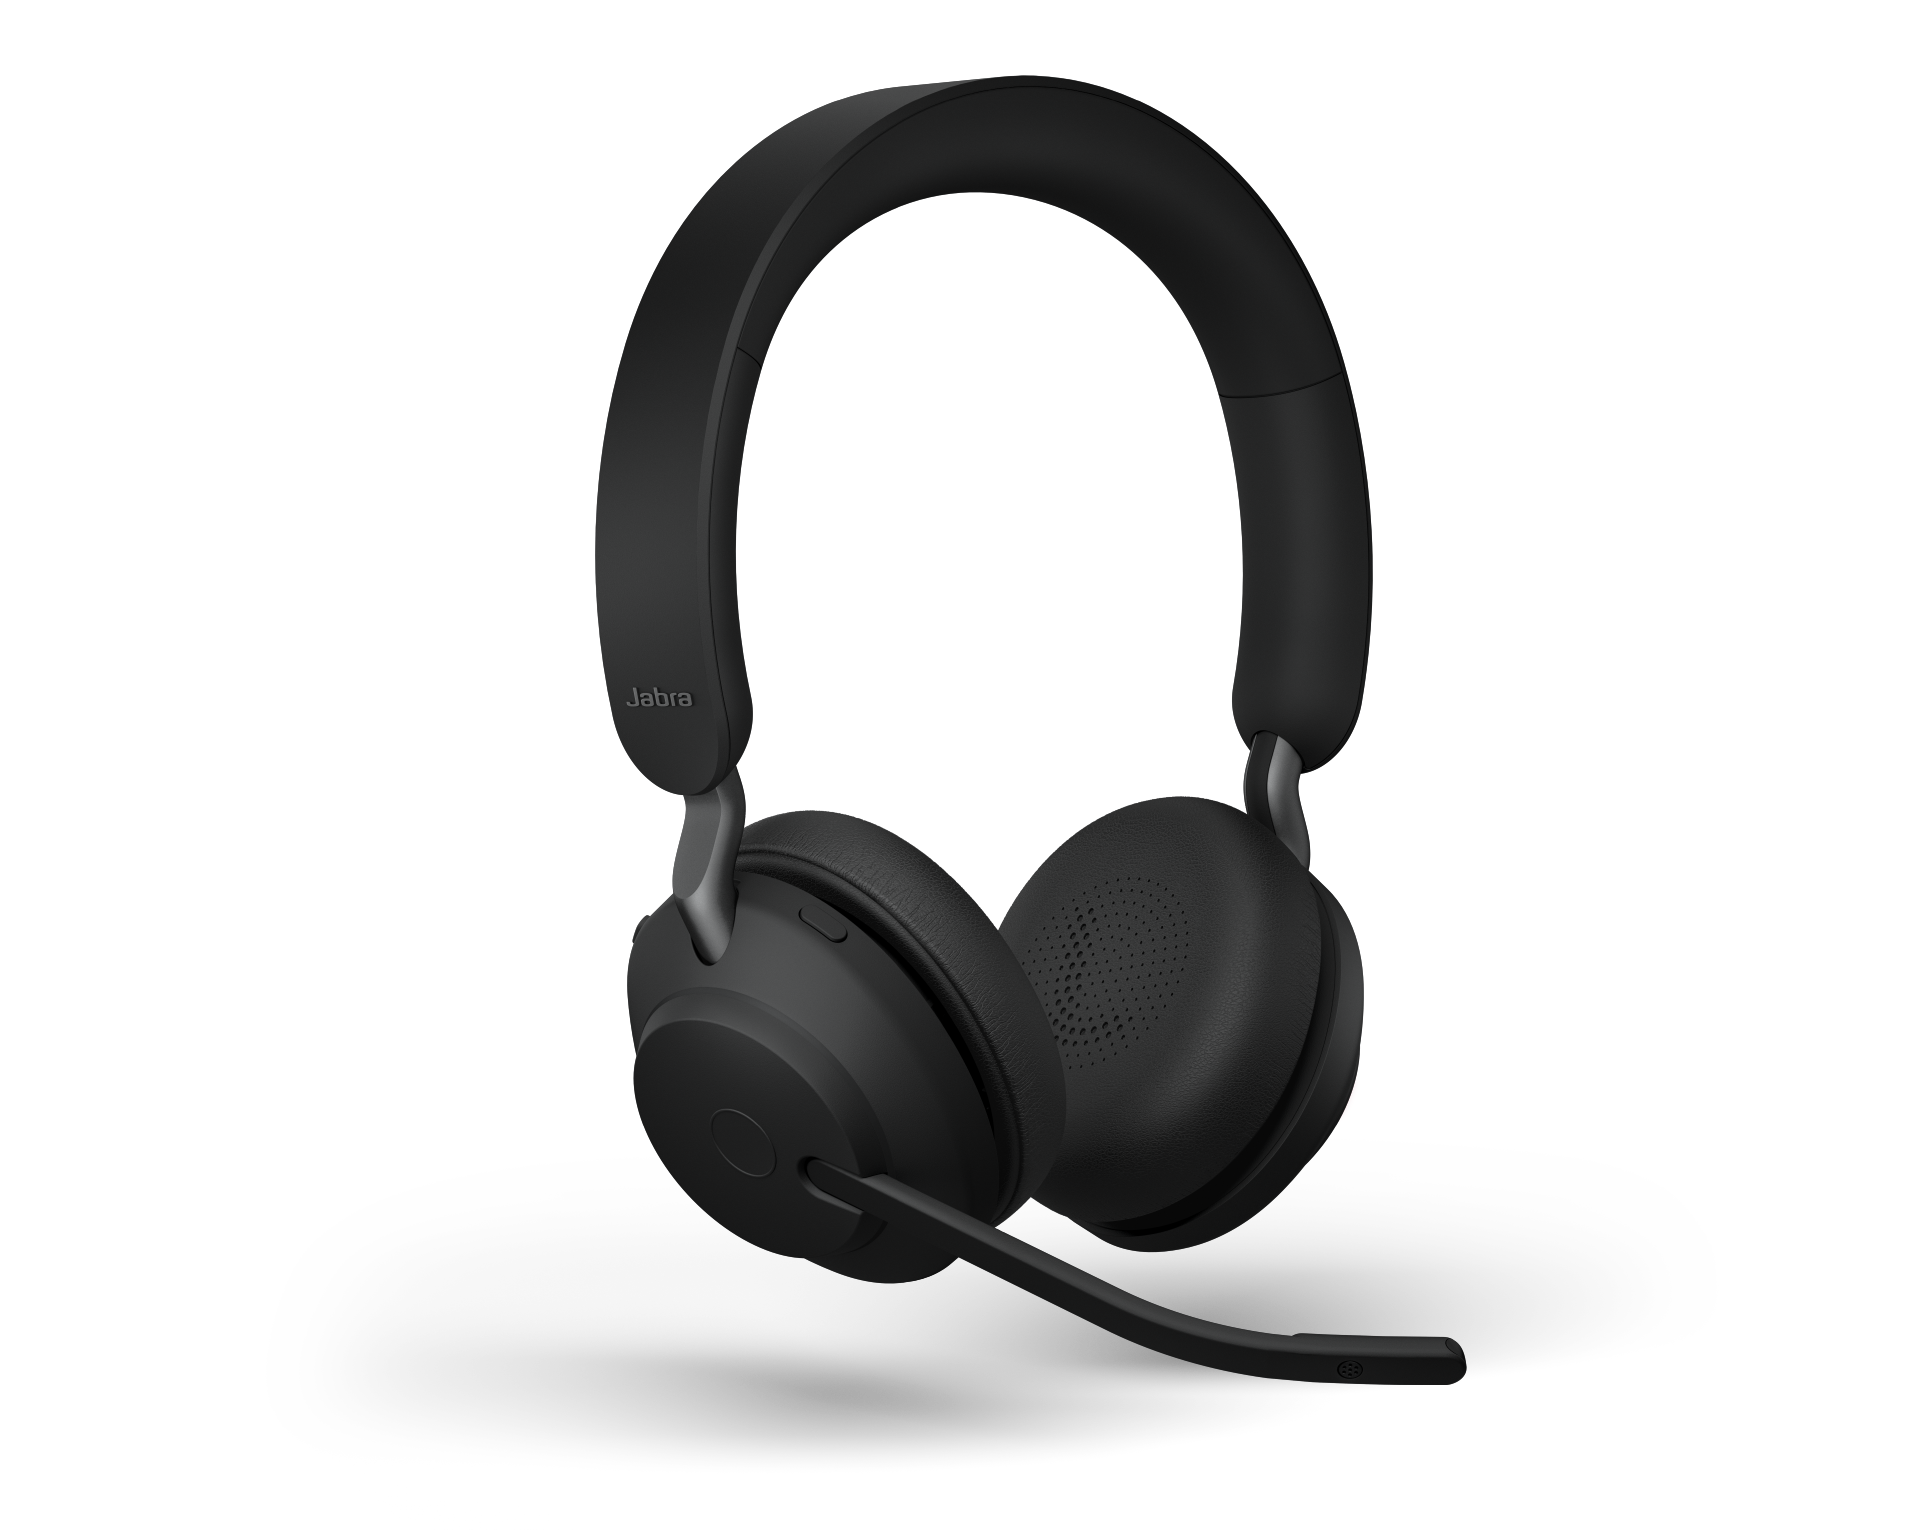 Jabra Evolve2 65 Engineered To Keep You Agile Work Anywhere With Superior Wireless Audio Performance